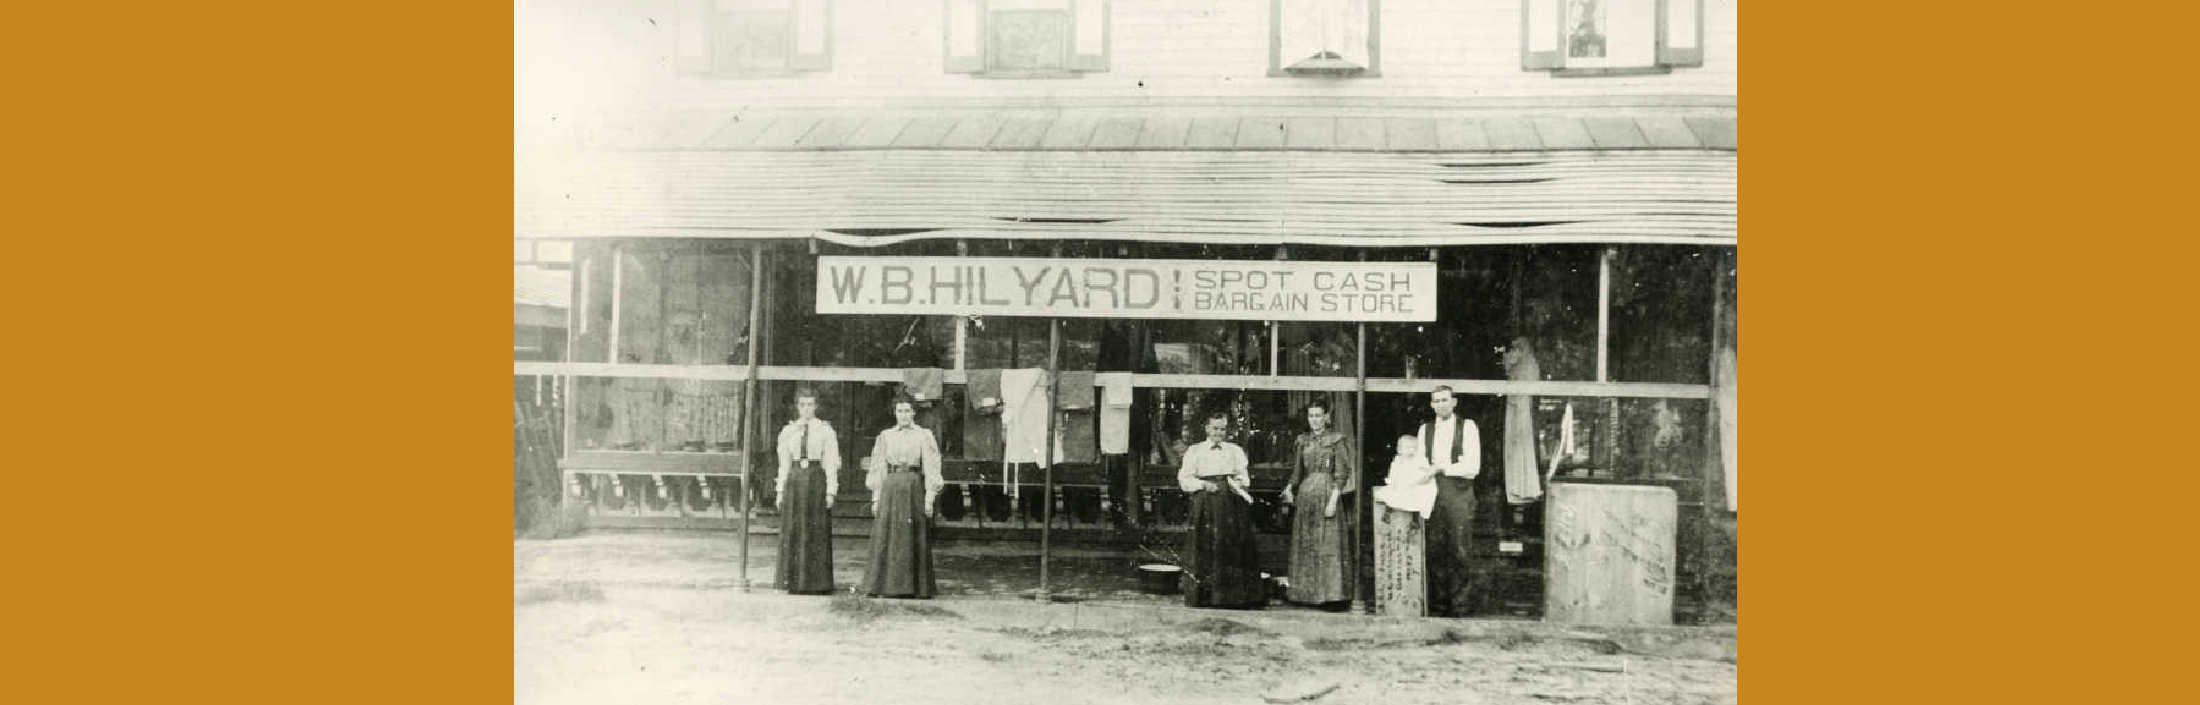 Life & Times in Old-Fashioned Country Stores, 1918 (with lots of photos!)